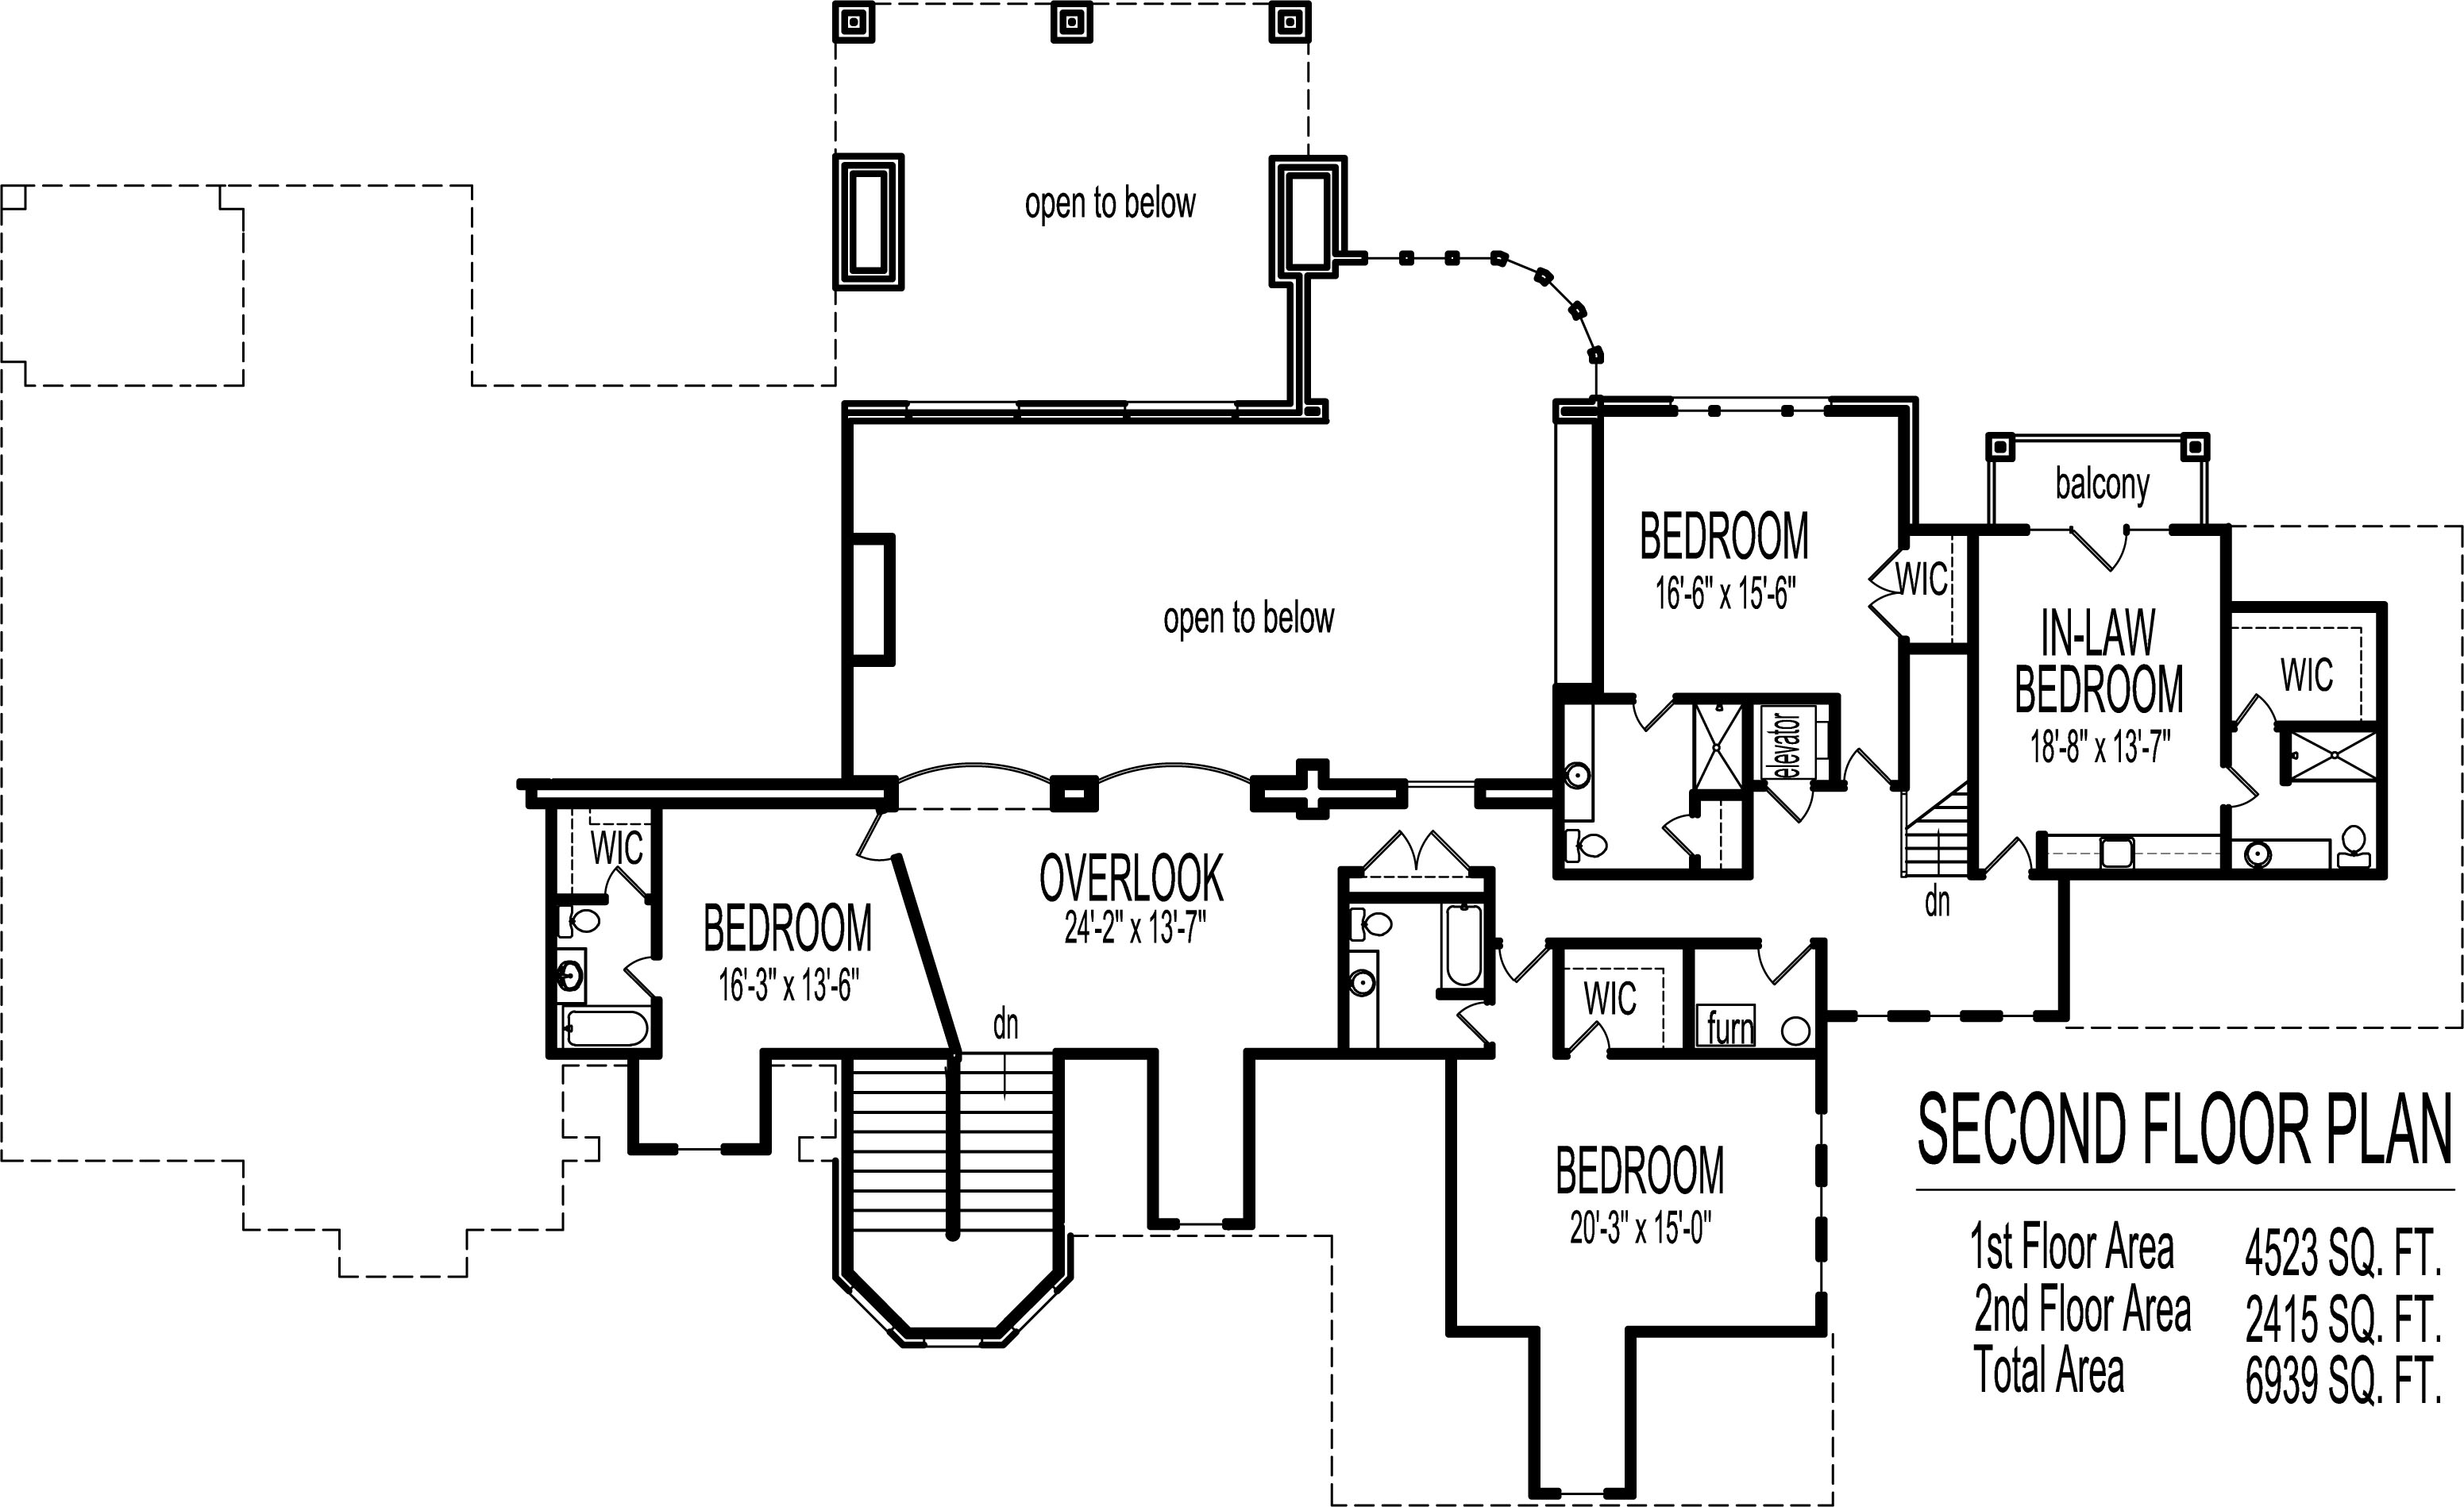 Mansion house floor plans blueprints 6 bedroom 2 story for 10 bedroom mansion floor plans